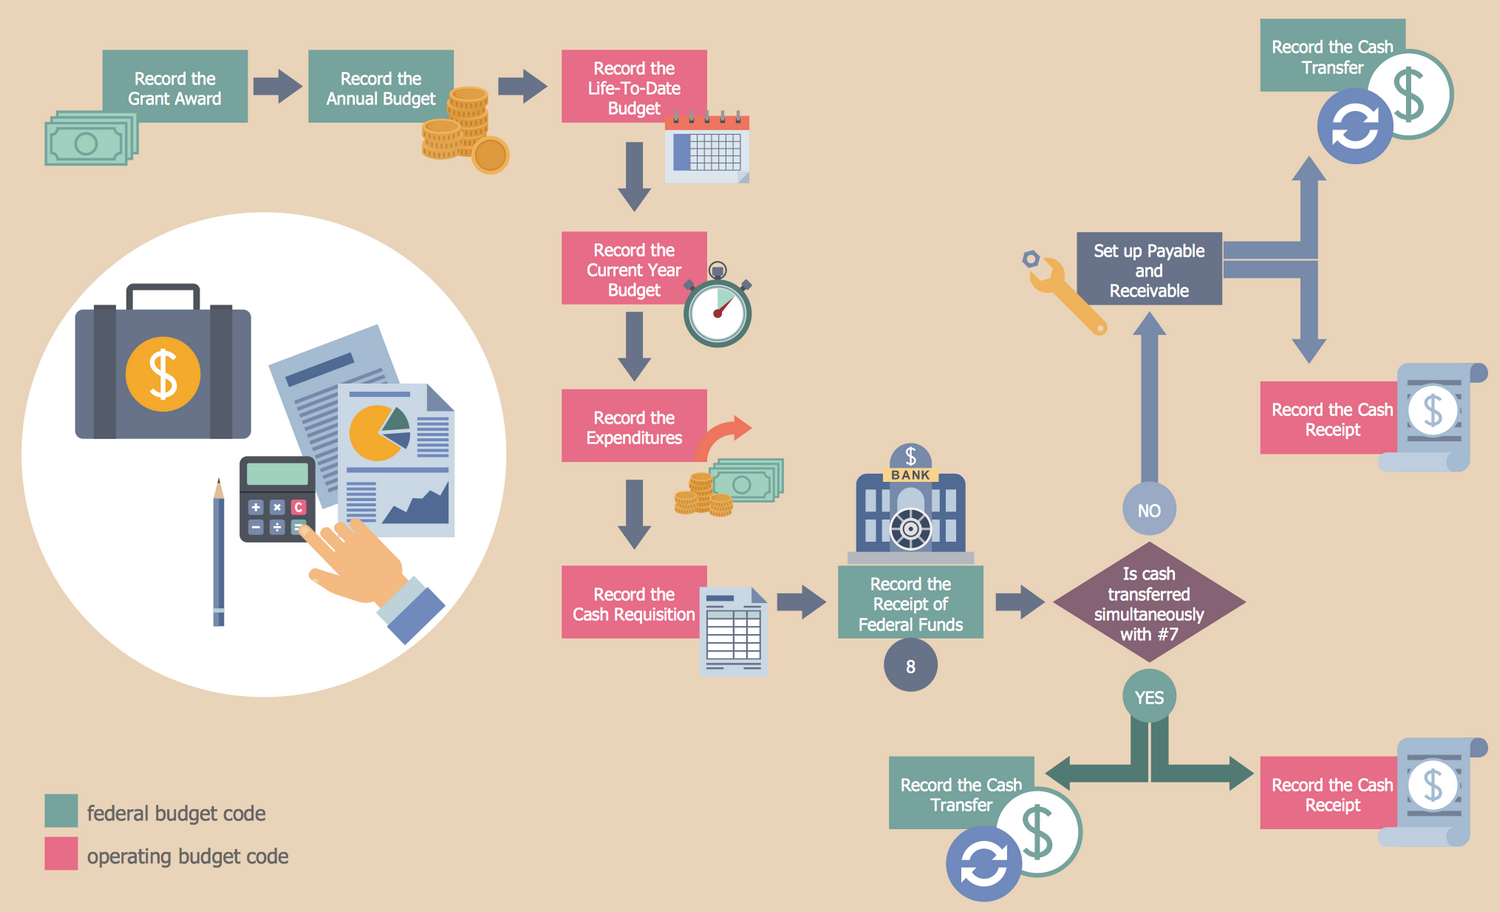 Business Process Workflow Diagram - Grant Accounting Business Process Flow